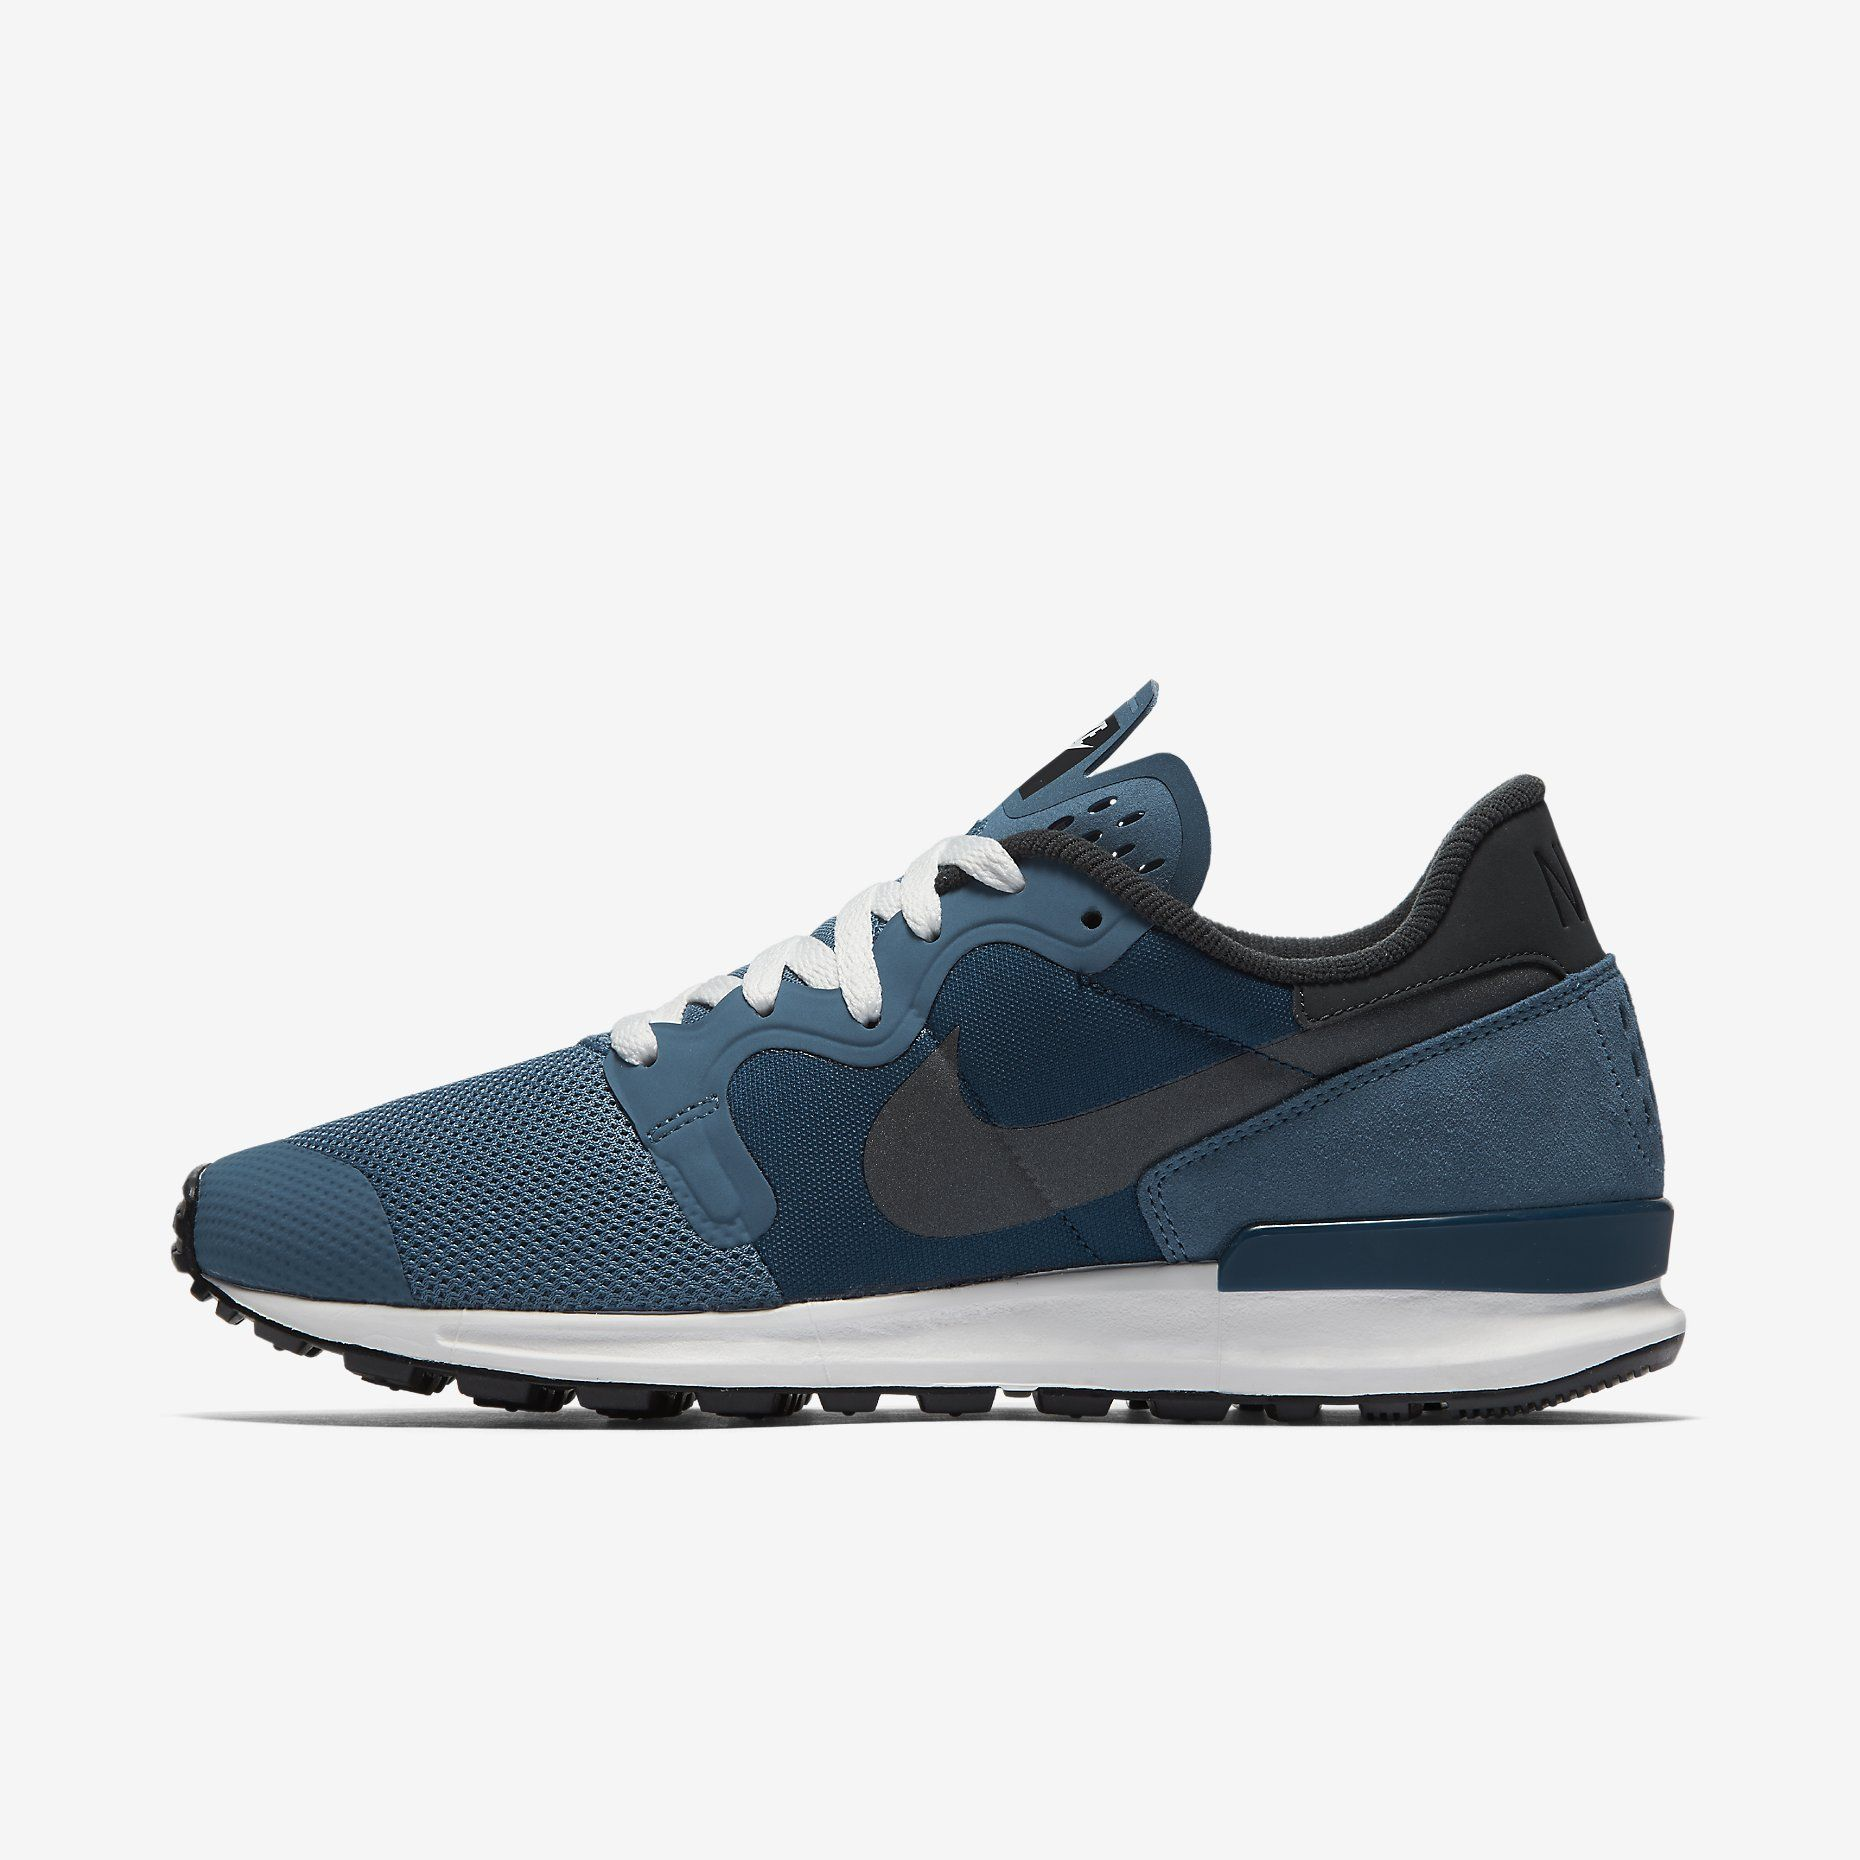 Nike Air Berwuda Men's Shoe: Ocean Fog/Coastal Blue/Summit White/Metallic